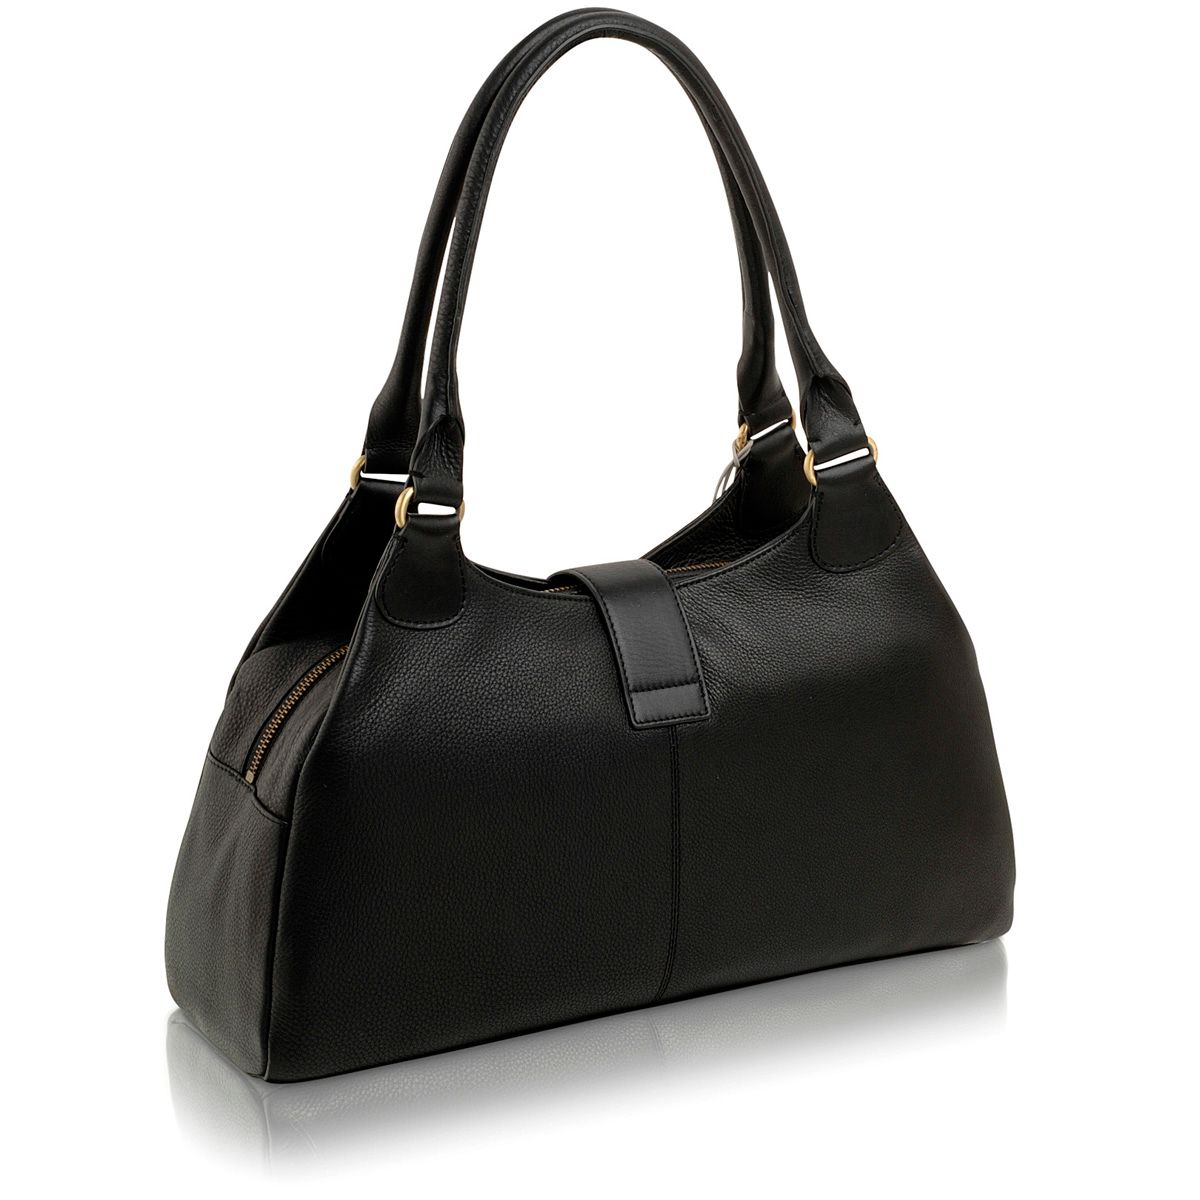 Black large leather ziptop tote bag